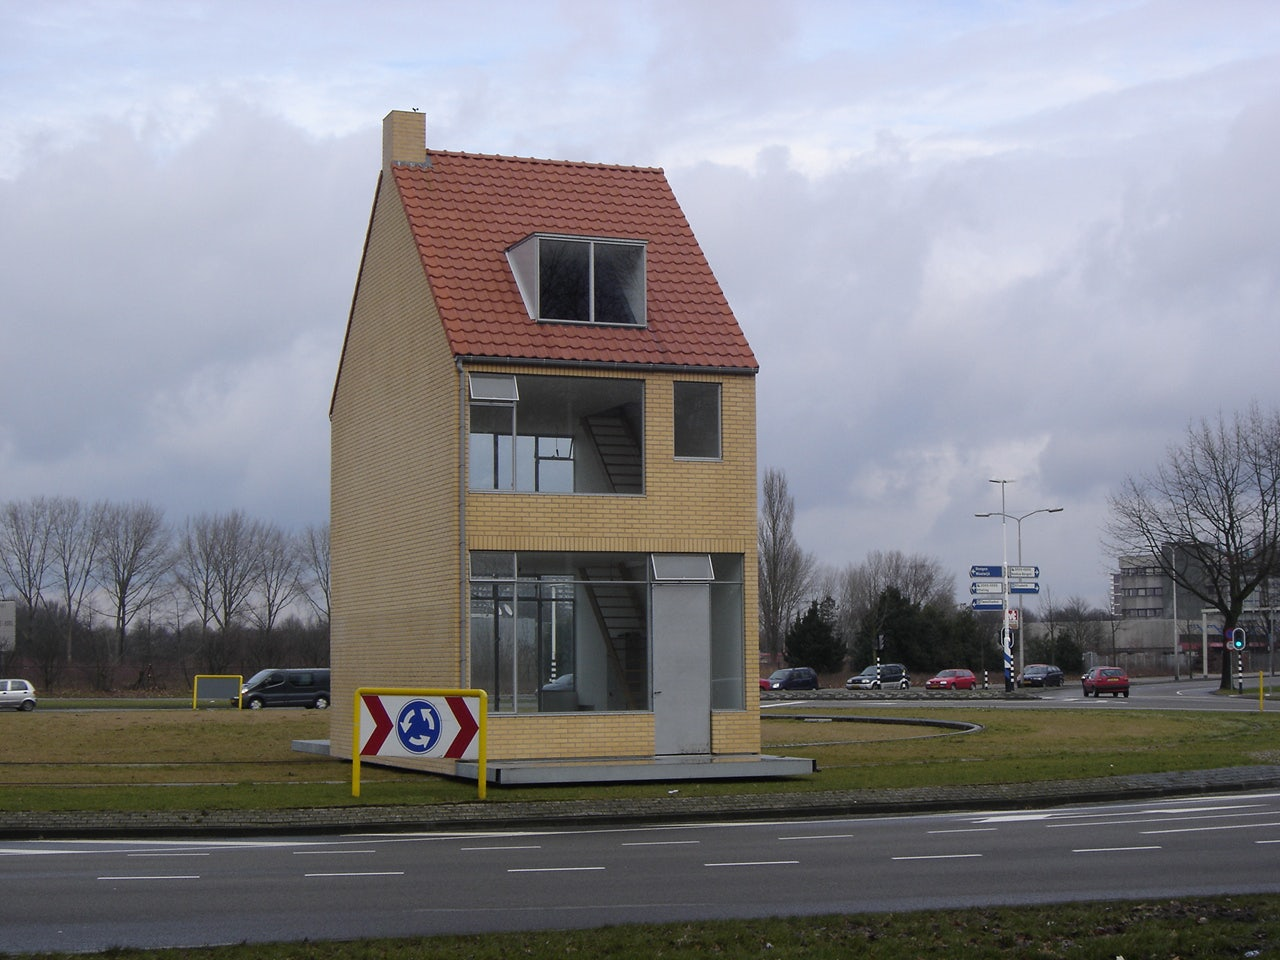 Rotating House at a roundabout